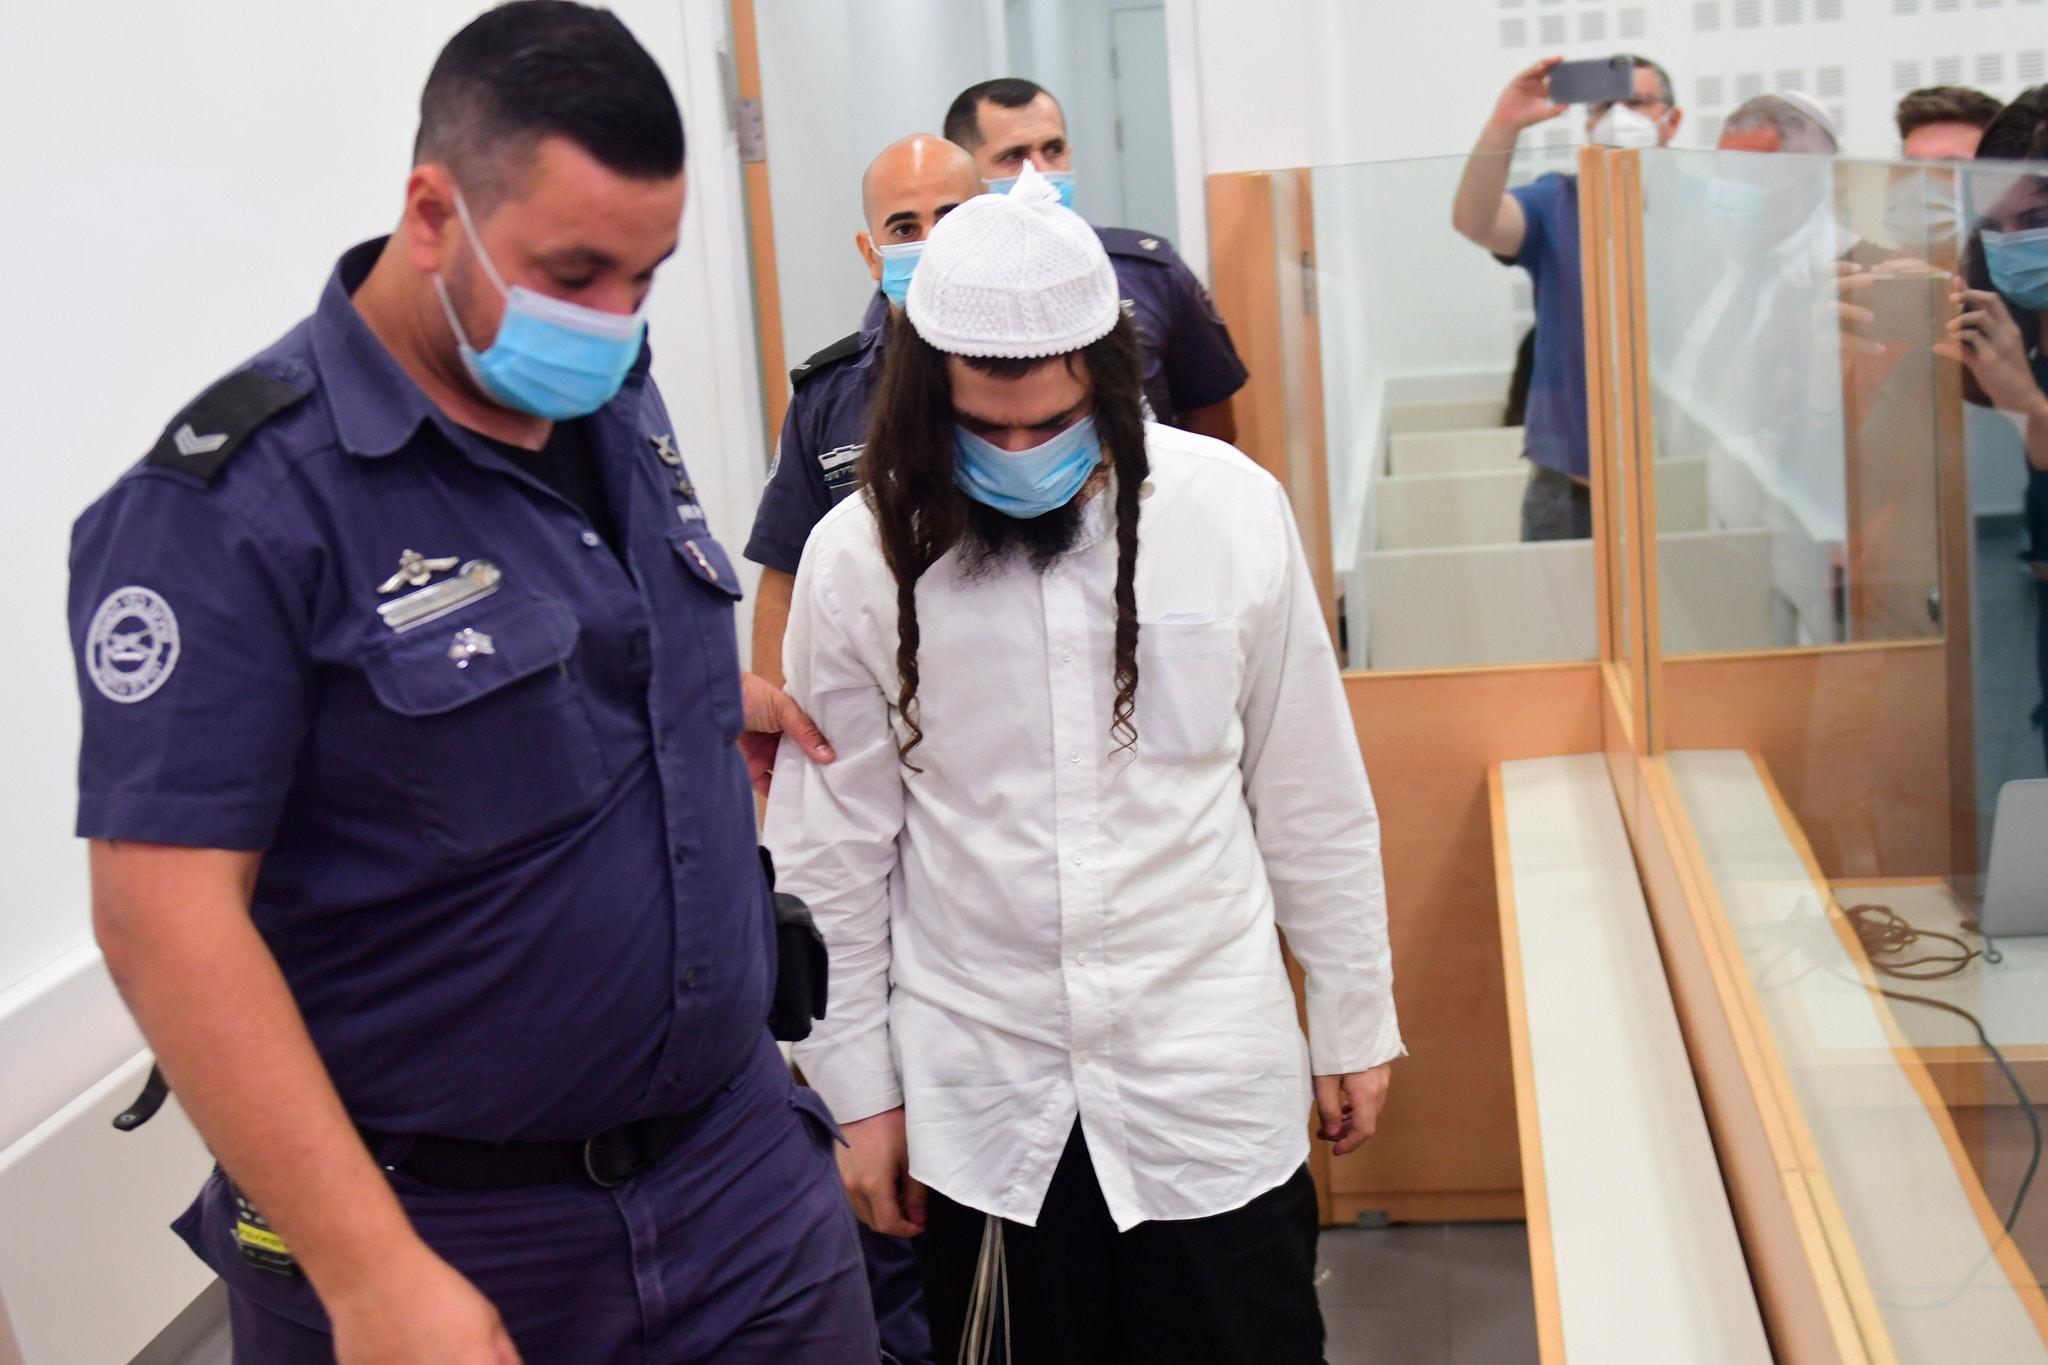 Amiram Ben-Uliel, a Jewish settler, is lead by police into court at the Central Lod District Court, in the central Israeli city on May 18, 2020, for his sentencing hearing over the 2015 arson attack that killed a Palestinian toddler and his parents. (Photo: Avshalom Sassoni)